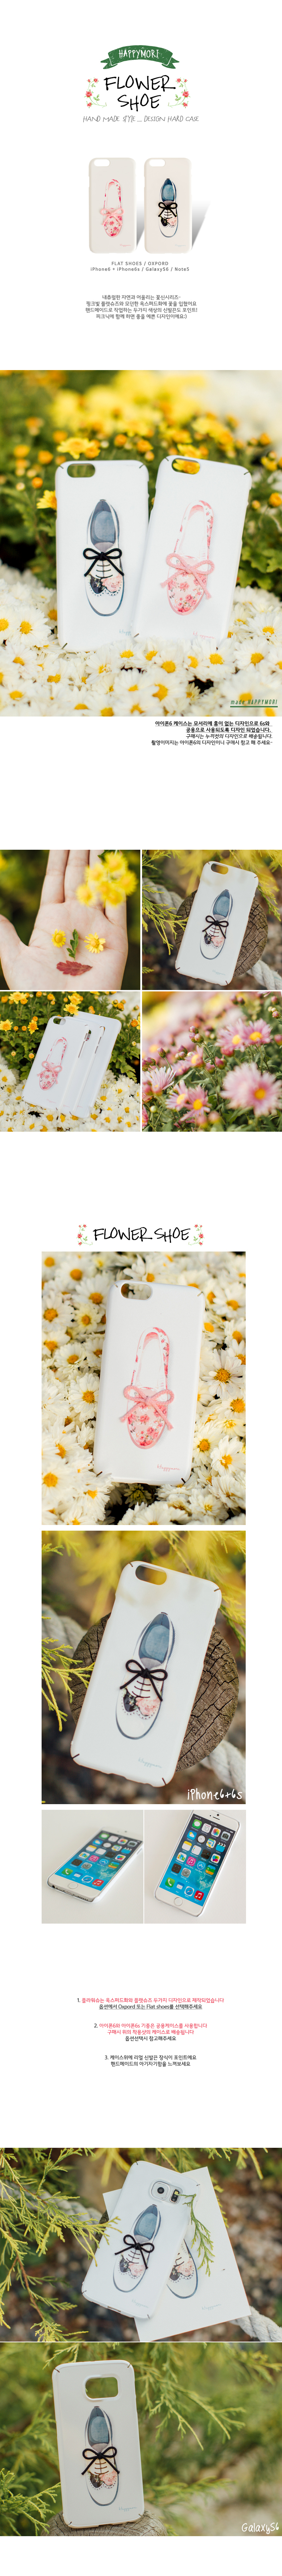 [HAPPYMORI]Hard Case_FlowerShoe (iPhone6,iPhone6s,iPhone6+,iPhone6s+,Galaxy S6Edge,Galaxy S6,Galaxy Note5,Galaxy Note4)